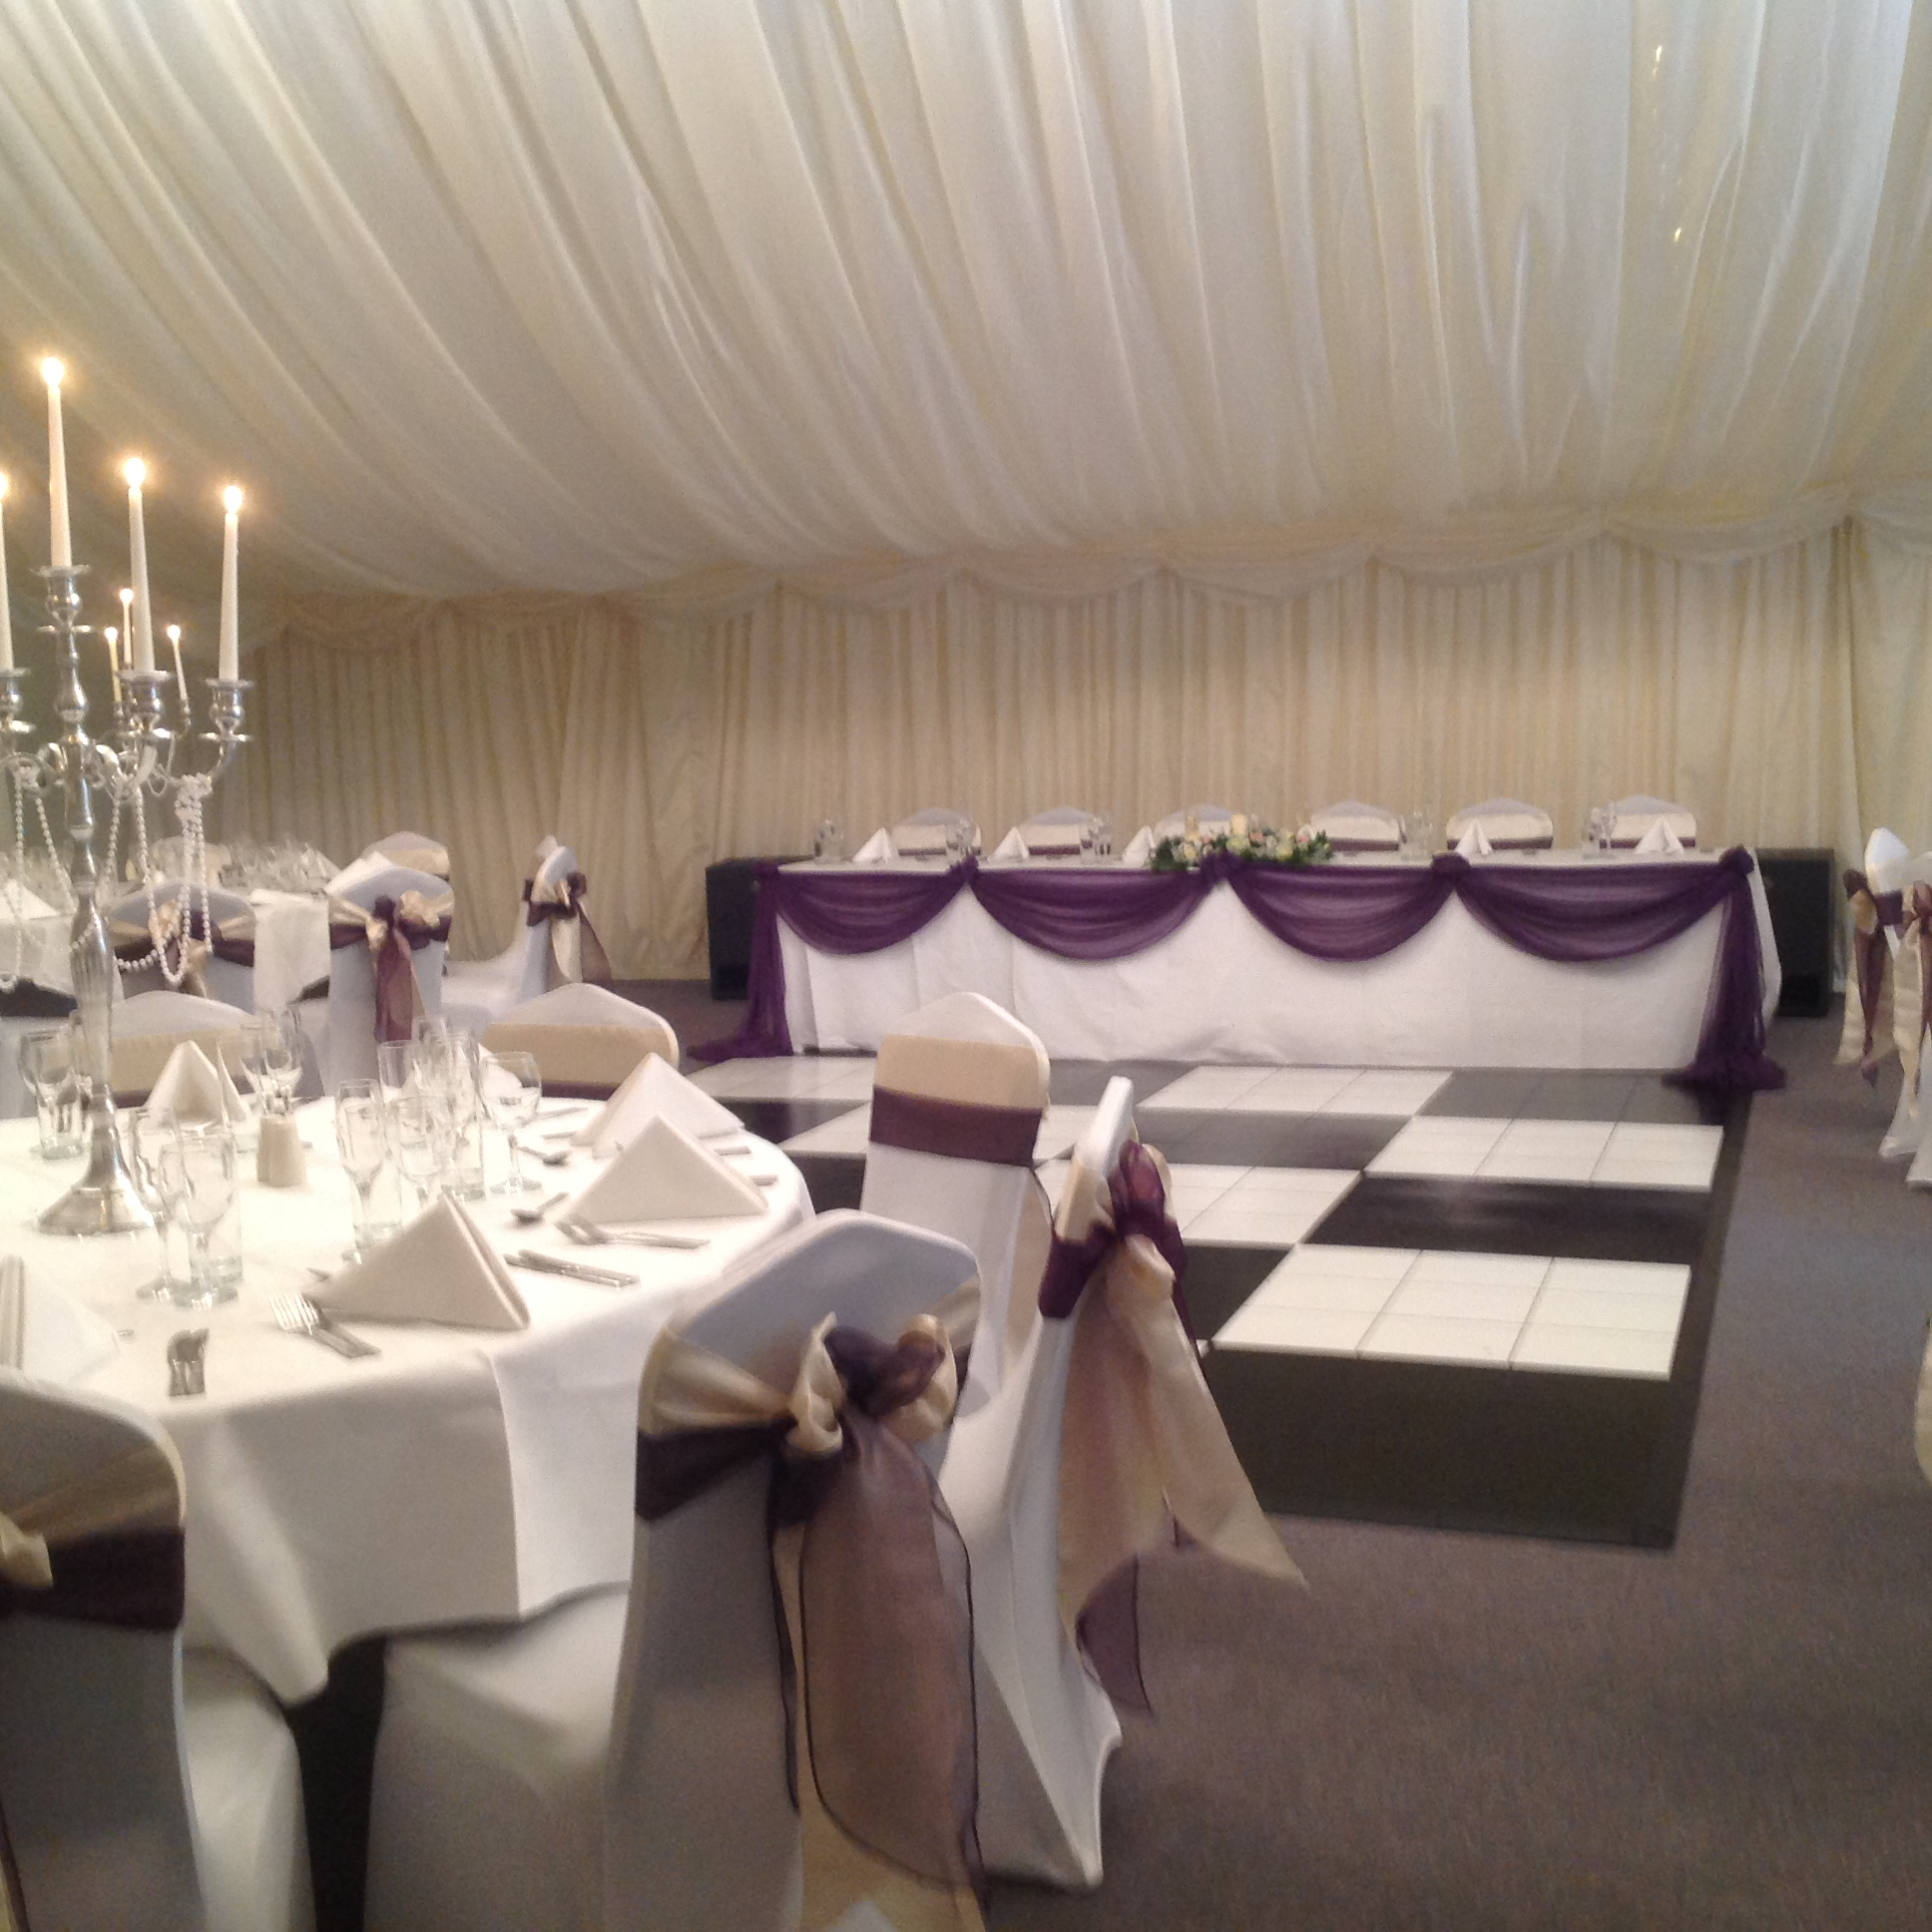 Wedding breakfast at Halfway House, Baildon, white chair covers, top table swagging, candelabra centrepiece. Ivory taffeta and plum sash